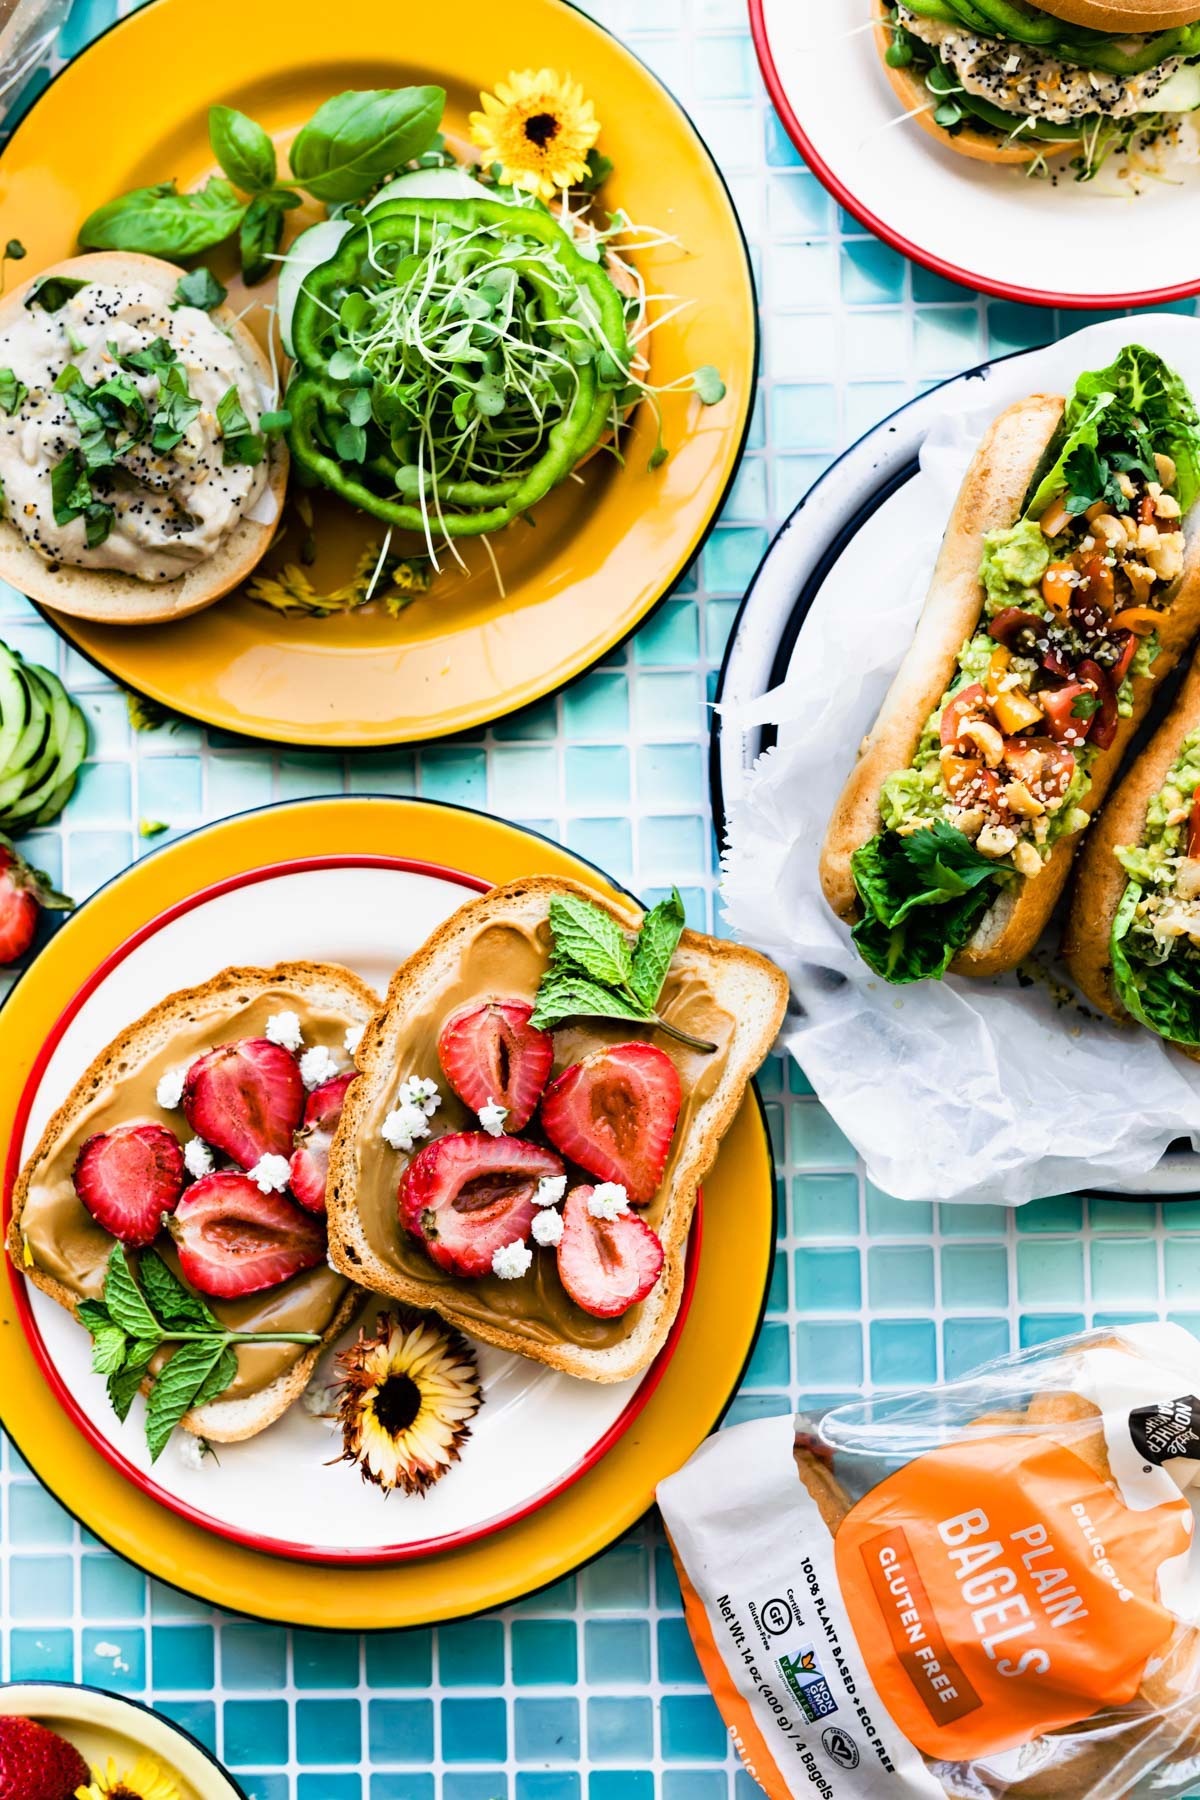 3 vegan and gluten free lunch box sandwiches on colorful plates